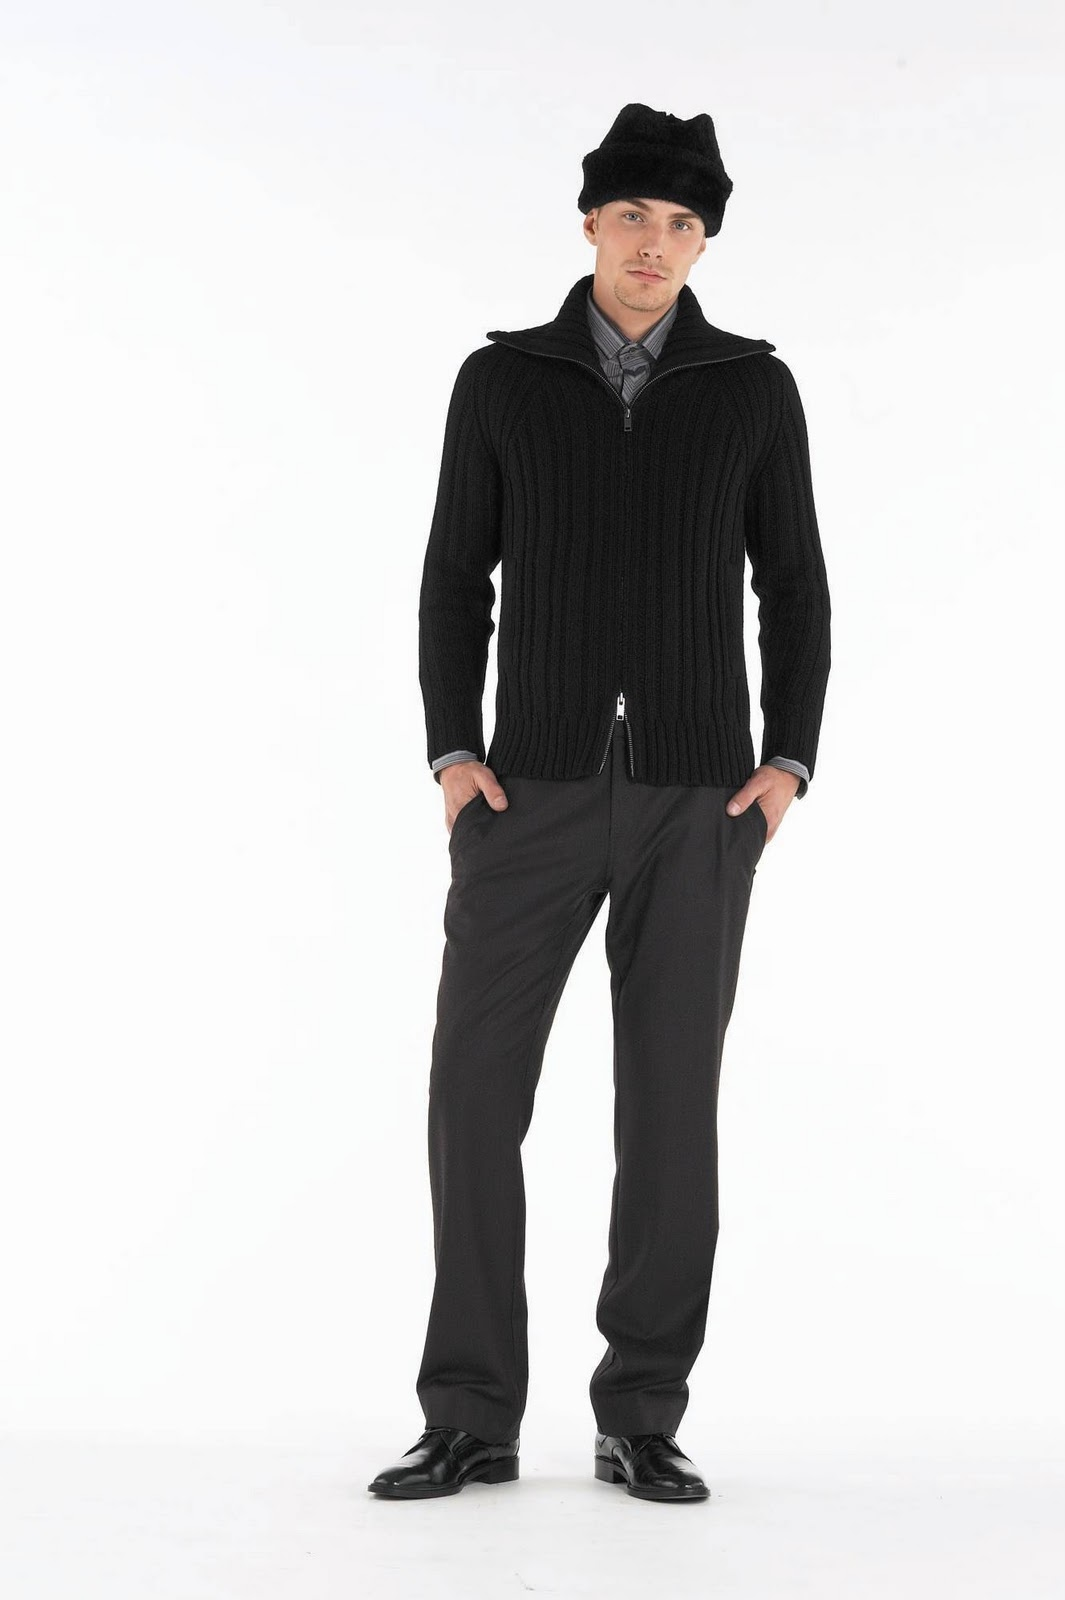 mens fashion, mens casual fashion, mens fashion suits, mens fashion jeans, mens fashion 2009, black mens fashion